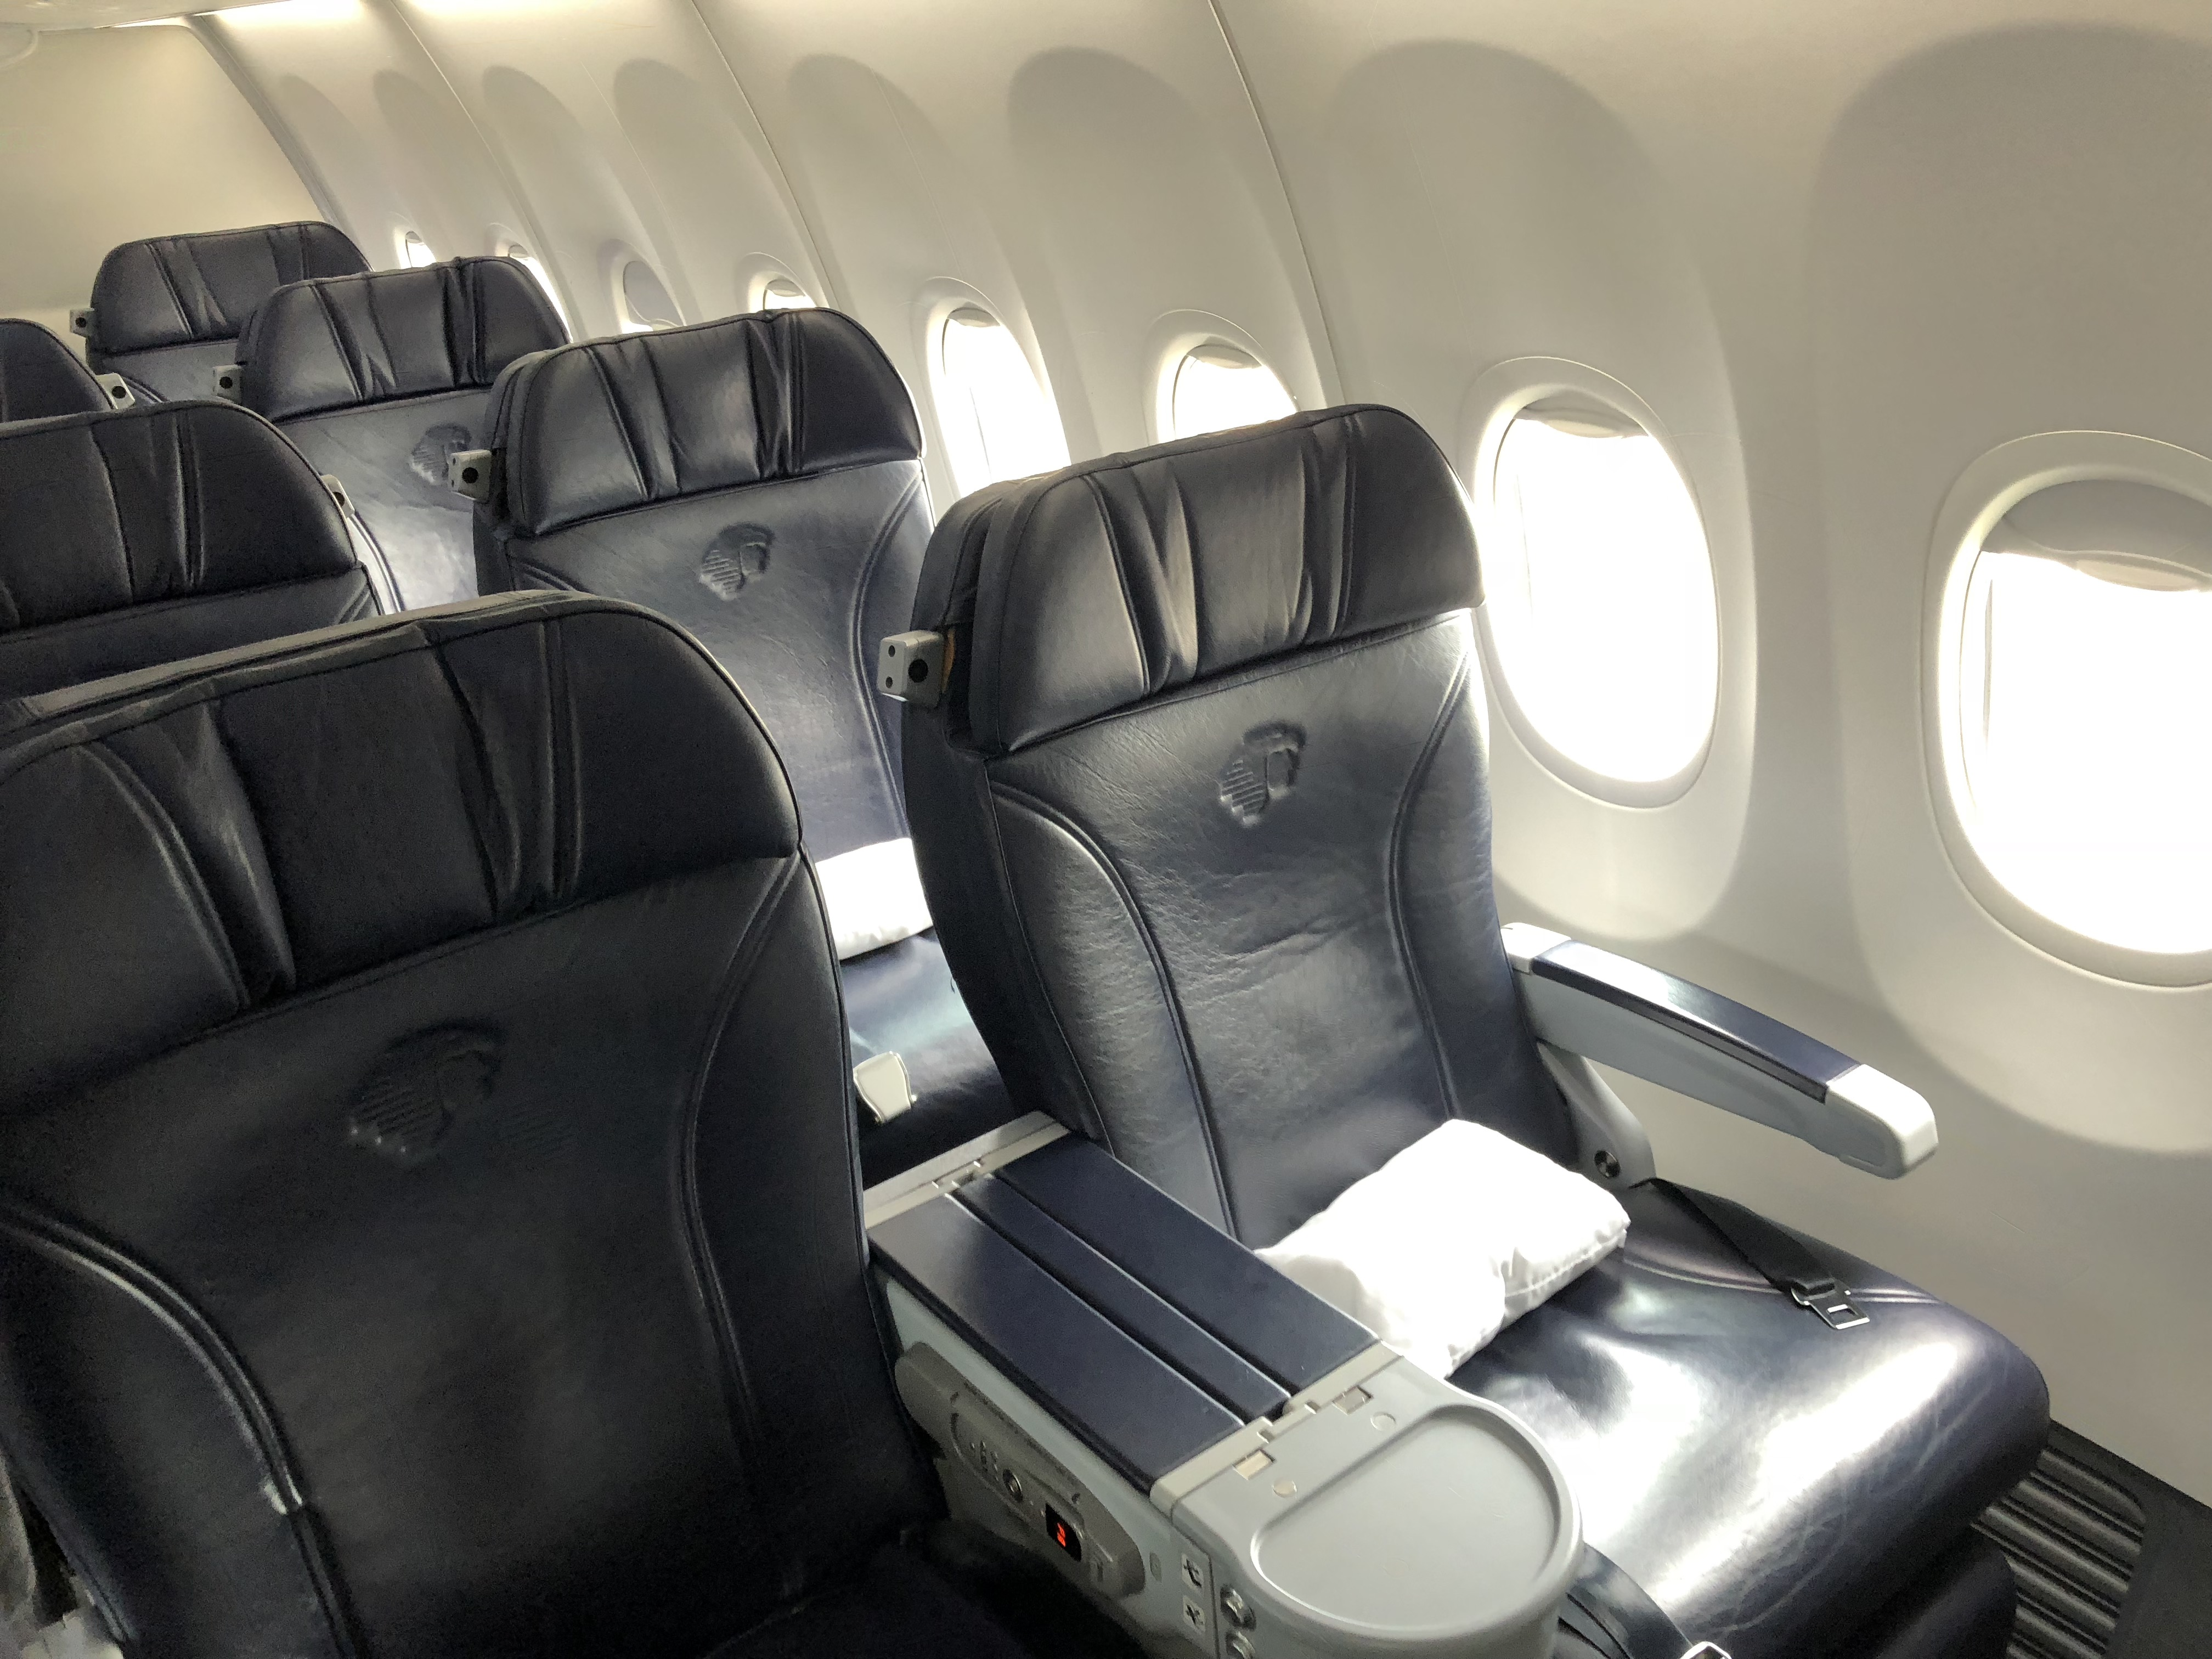 Aeromexico's comfortable Boeing 737-800 business class